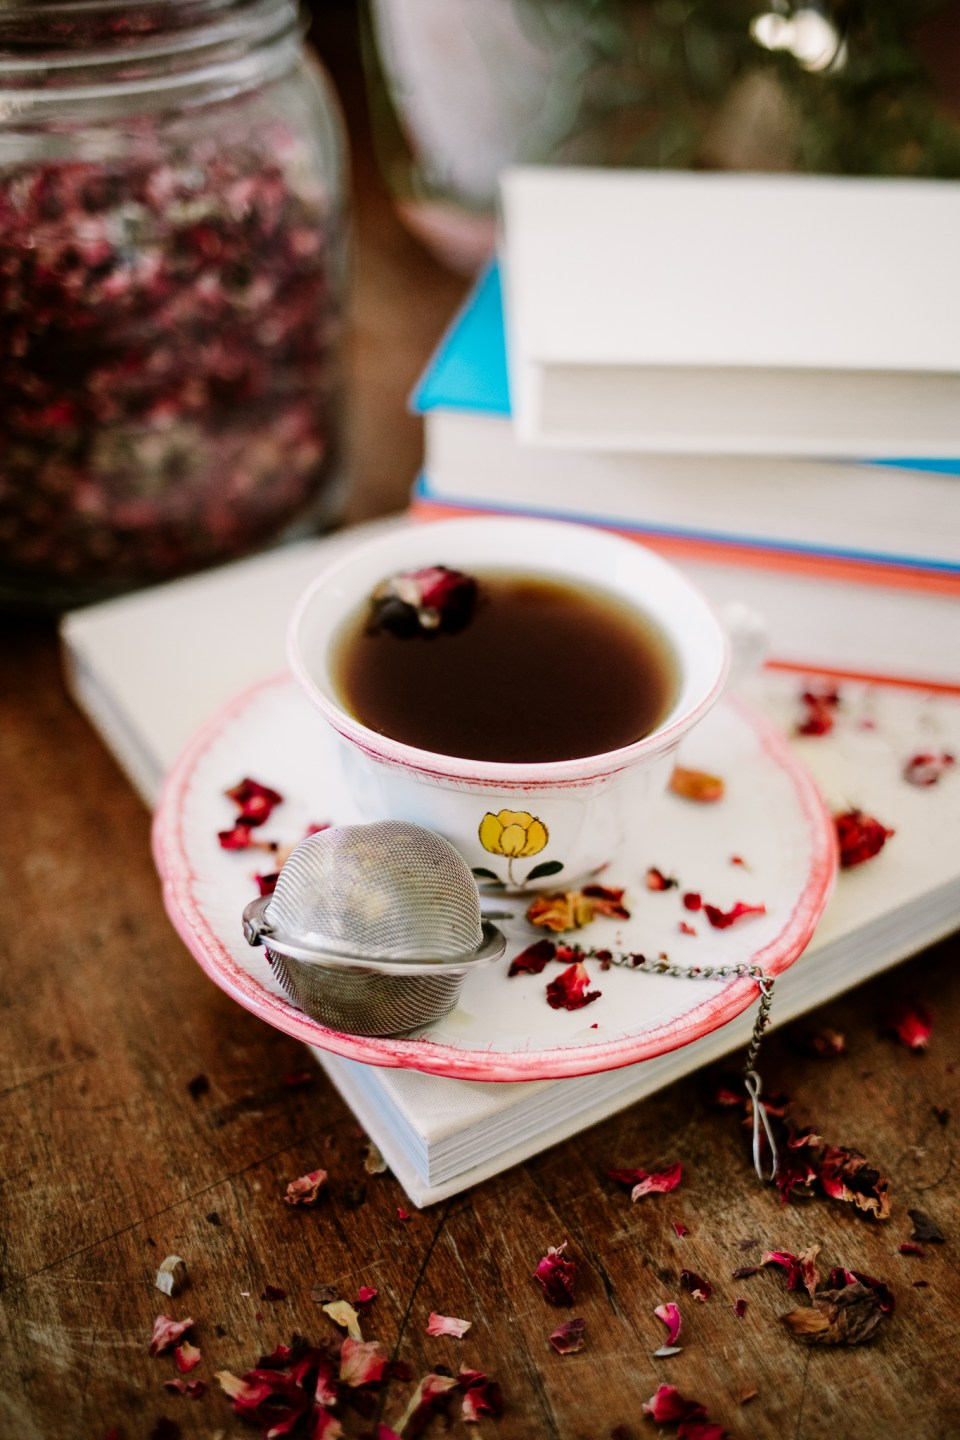 4 Common Types of Tea To Know & How To Use Them | Herbal Academy | Learn about four different but common teas, including black, green, white, and herbal teas, as well as various ways to use and enjoy these types of tea.